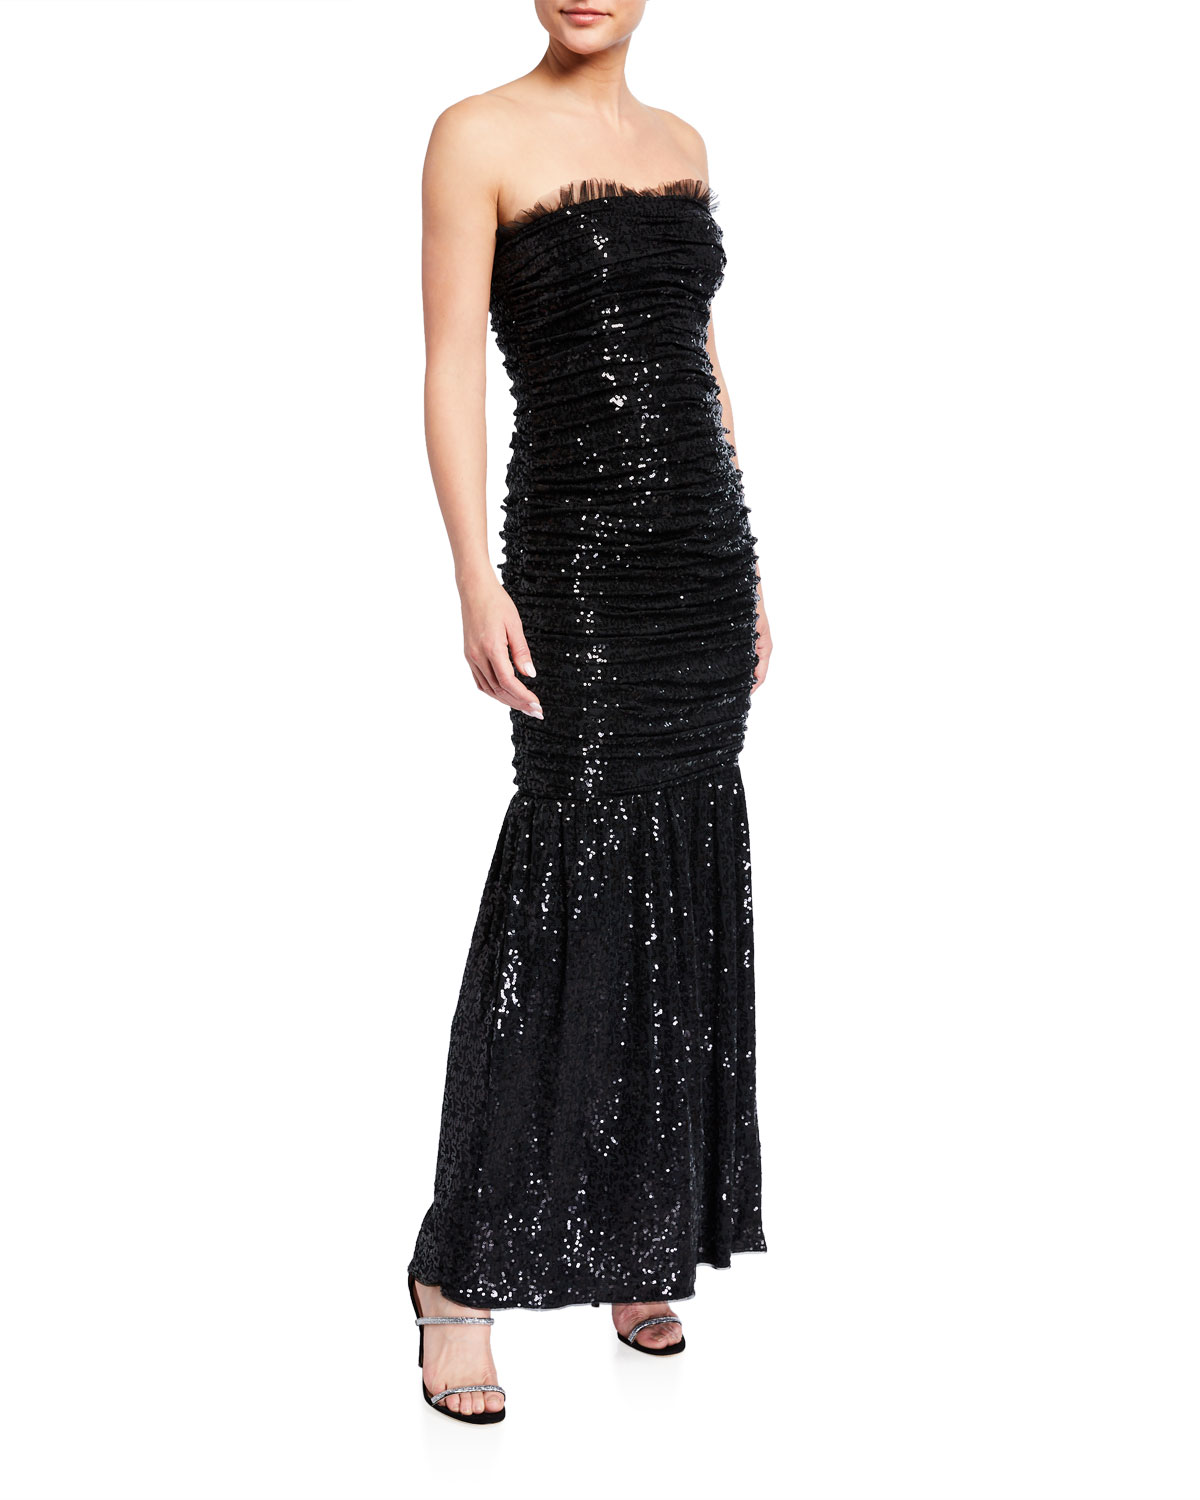 Ruched Sequin Knit Strapless Dress by Aidan By Aidan Mattox